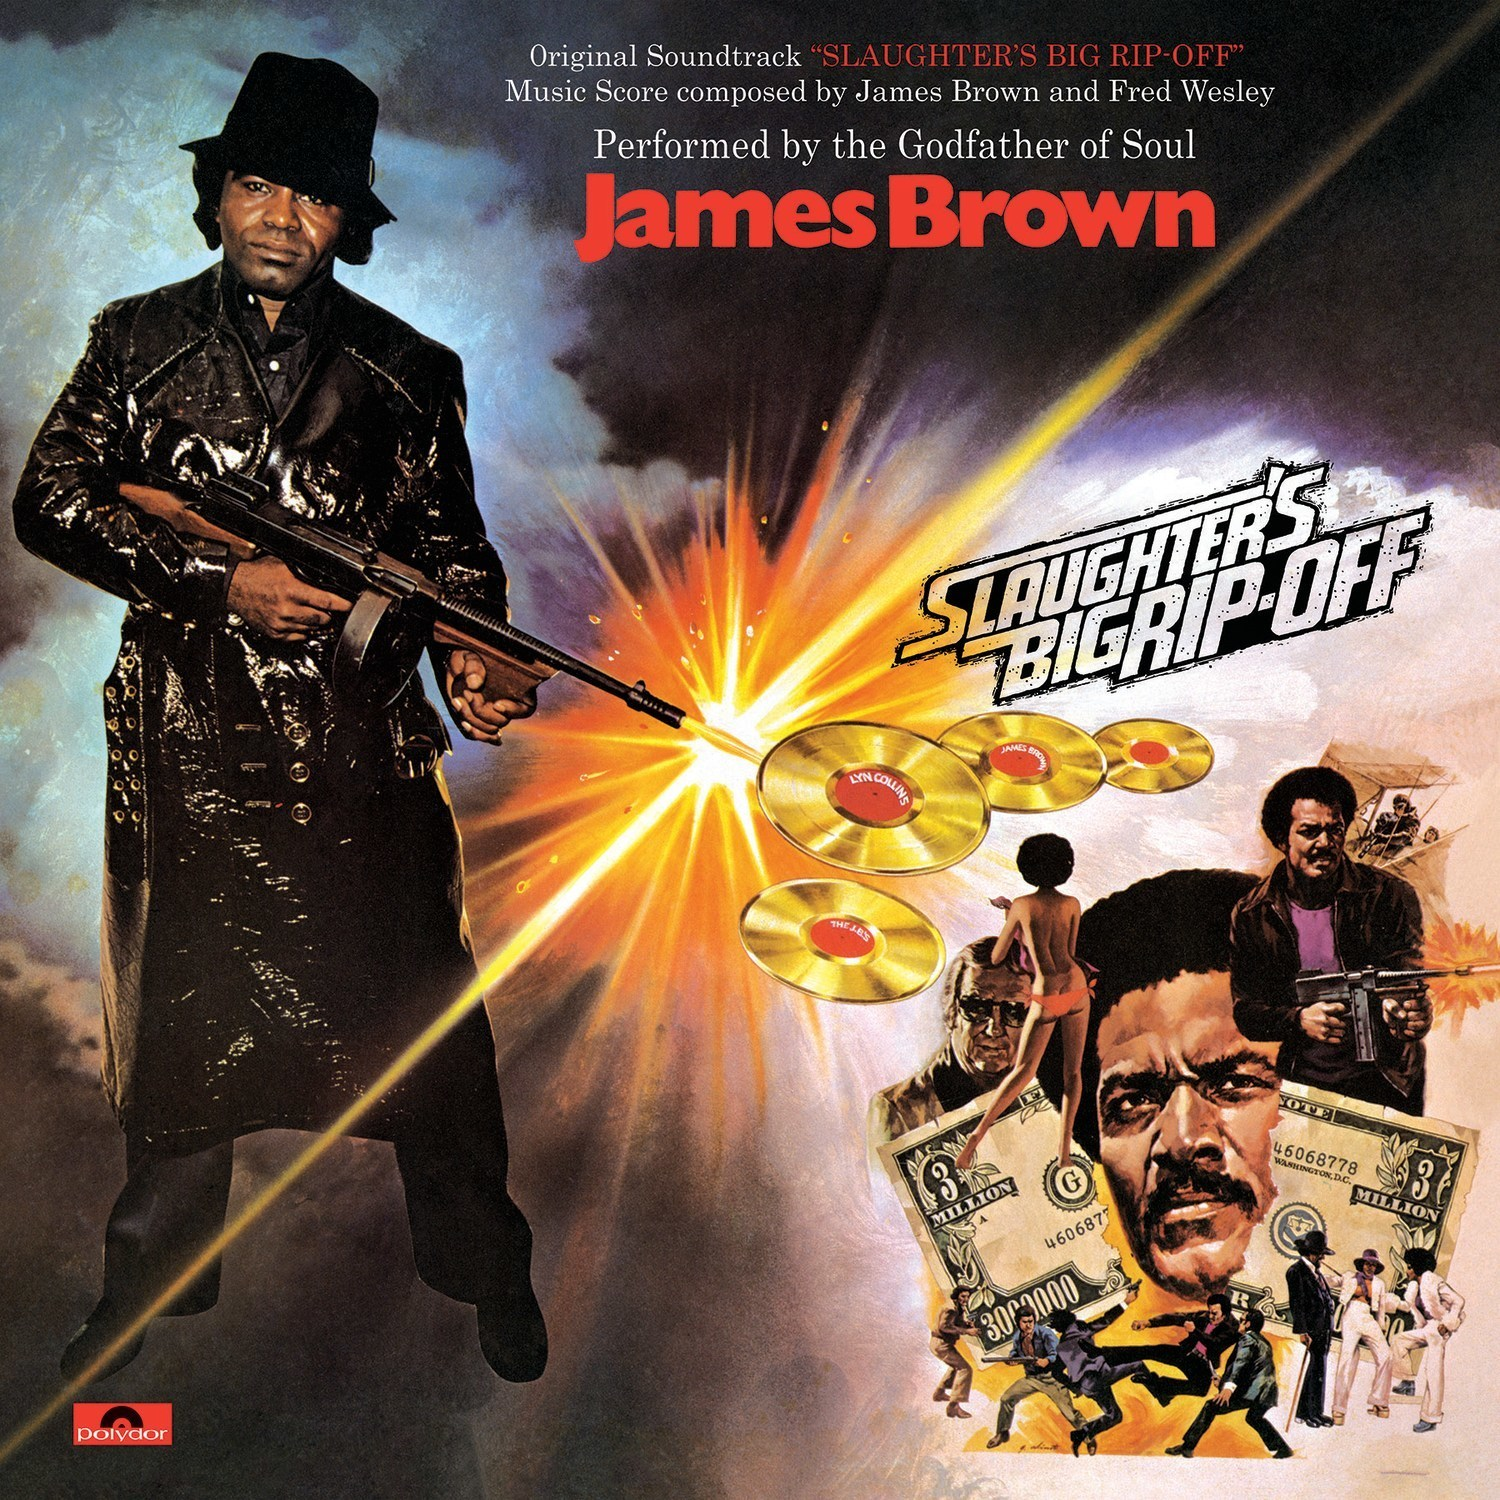 James Brown's original soundtrack albums for the 1973 blaxploitation film classics 'Black Caesar' and 'Slaughter's Big Rip-Off' are reissued today on 150-gram vinyl LPs by Polydor/UMe. Both albums are presented in tip-on jackets with faithfully replicated artwork, including 'Slaughter's Big Rip-Off''s gatefold. In addition, seven sought-after, James Brown-produced albums from members of his revue are now available for the first time for streaming and download purchase.